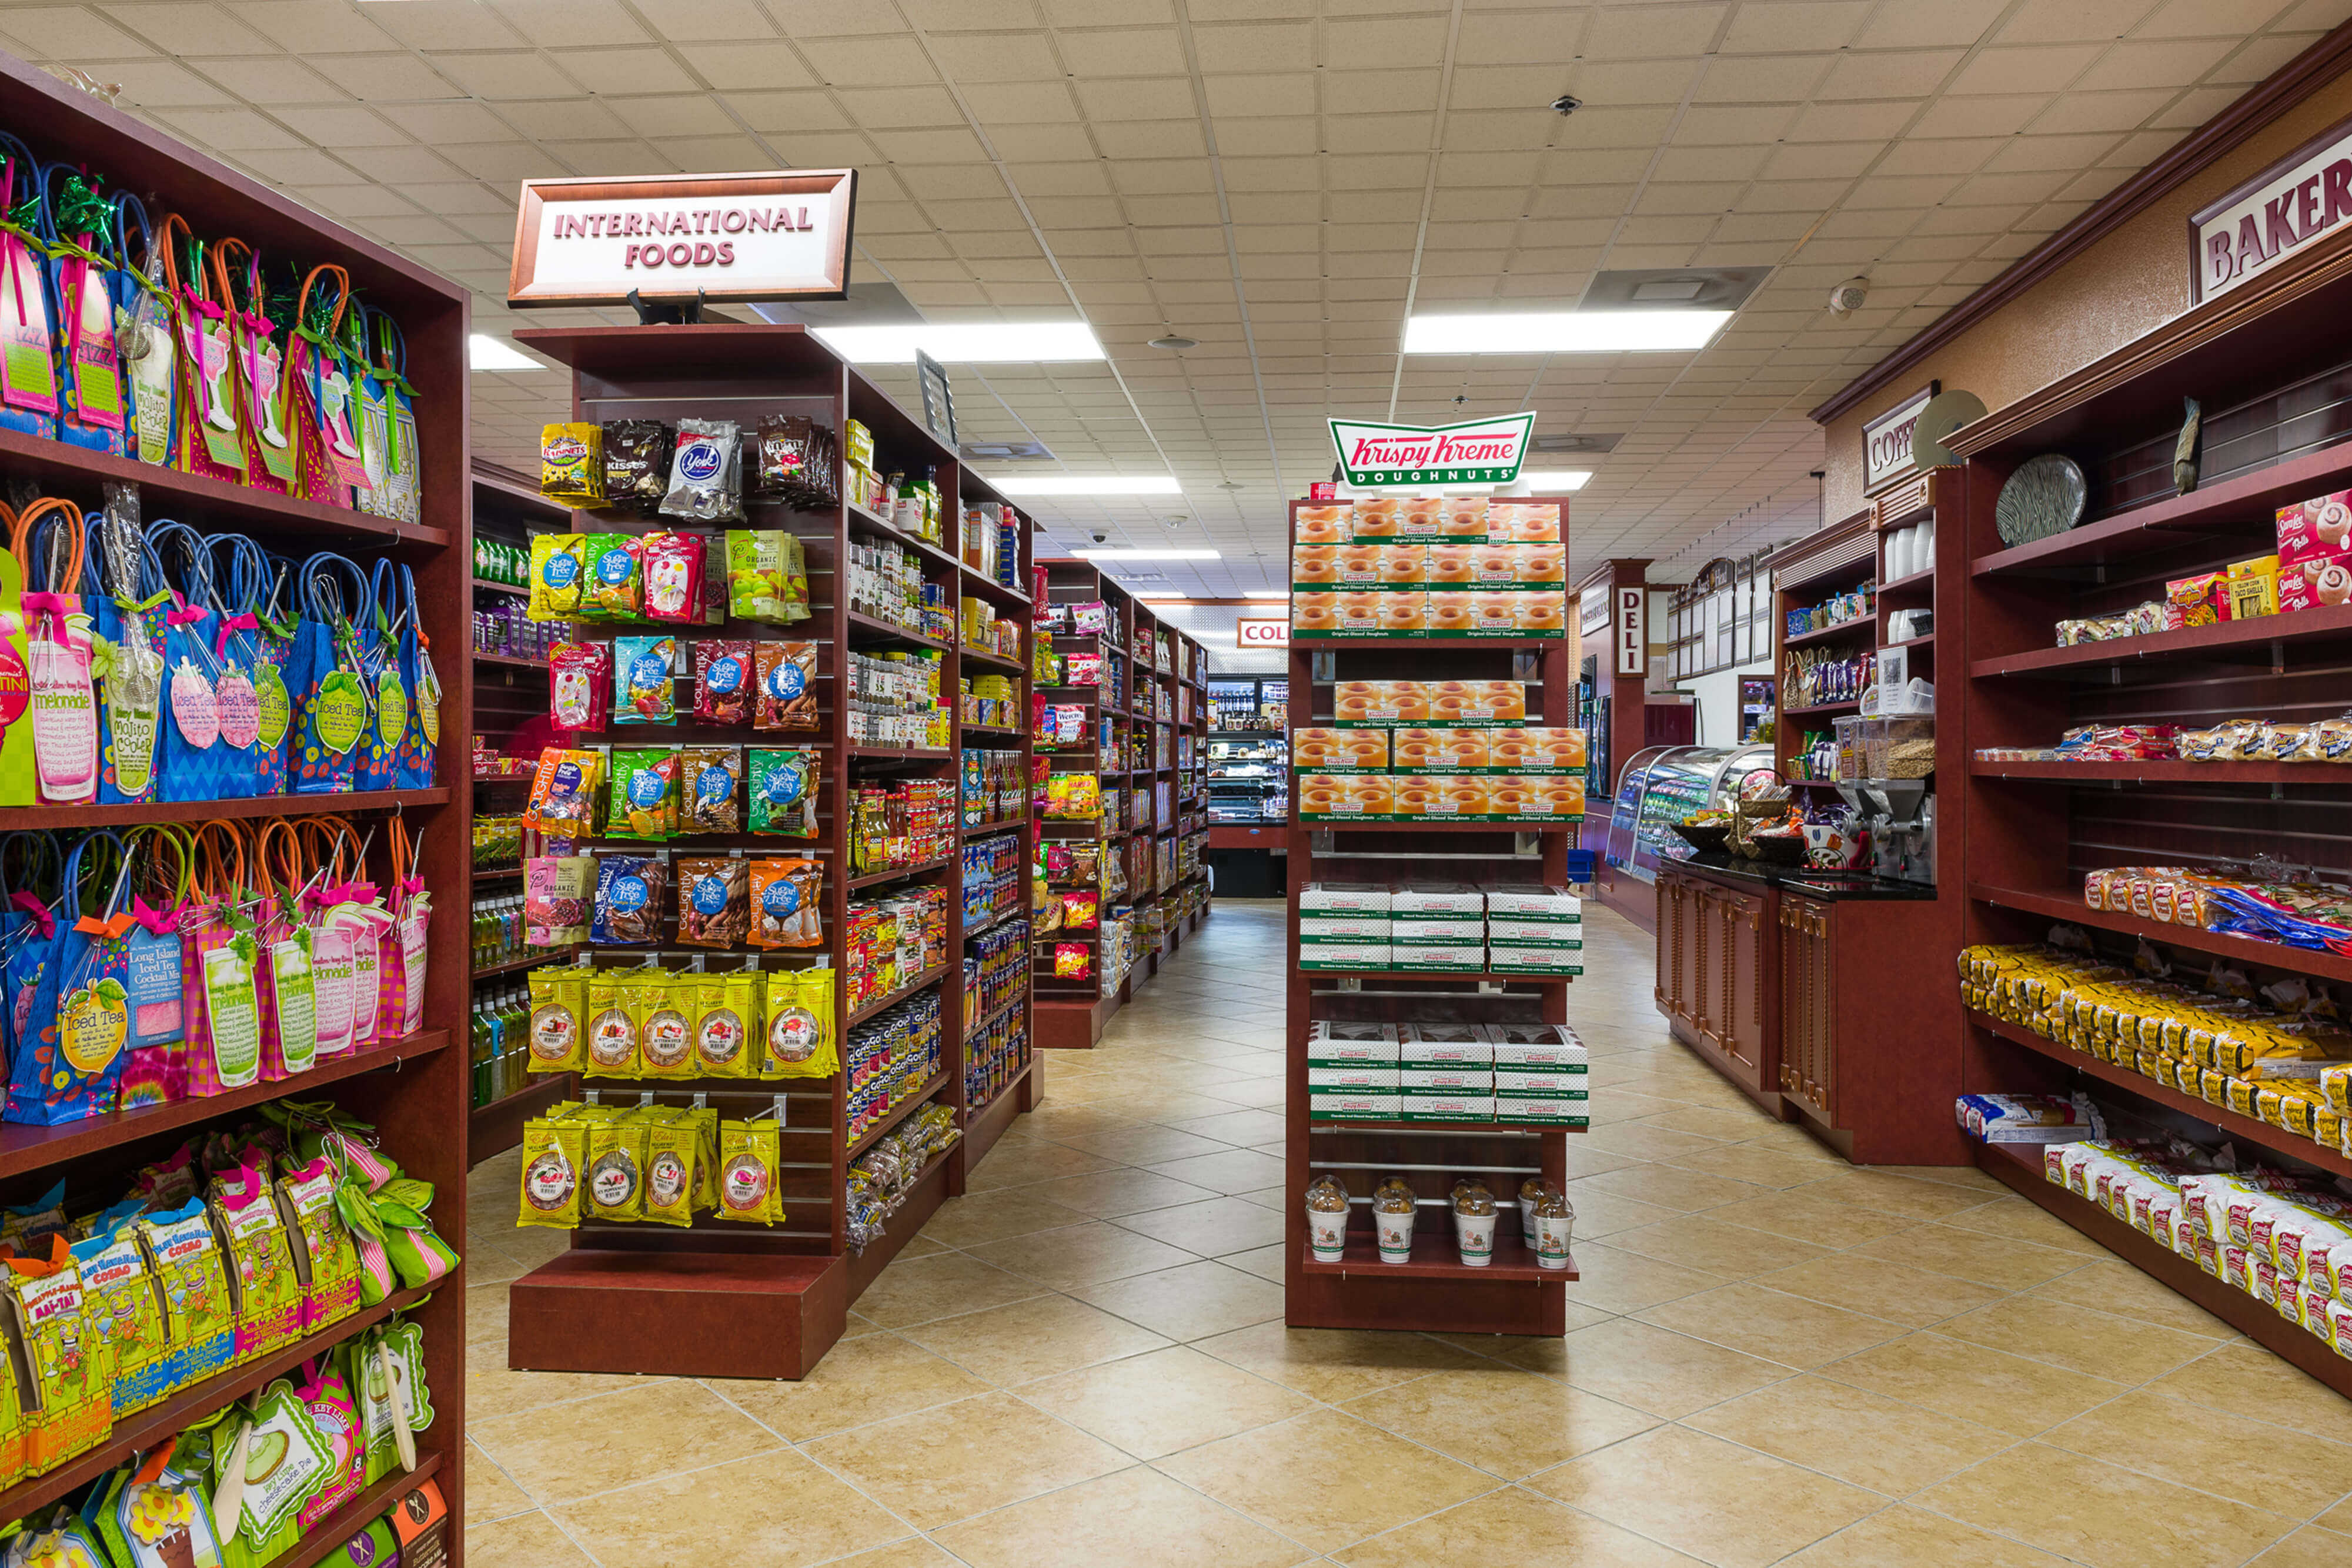 Marketplace and Grocery Store at our Branson Hotel near Roark Valley Road | Groceries Westgate Branson Woods Resort